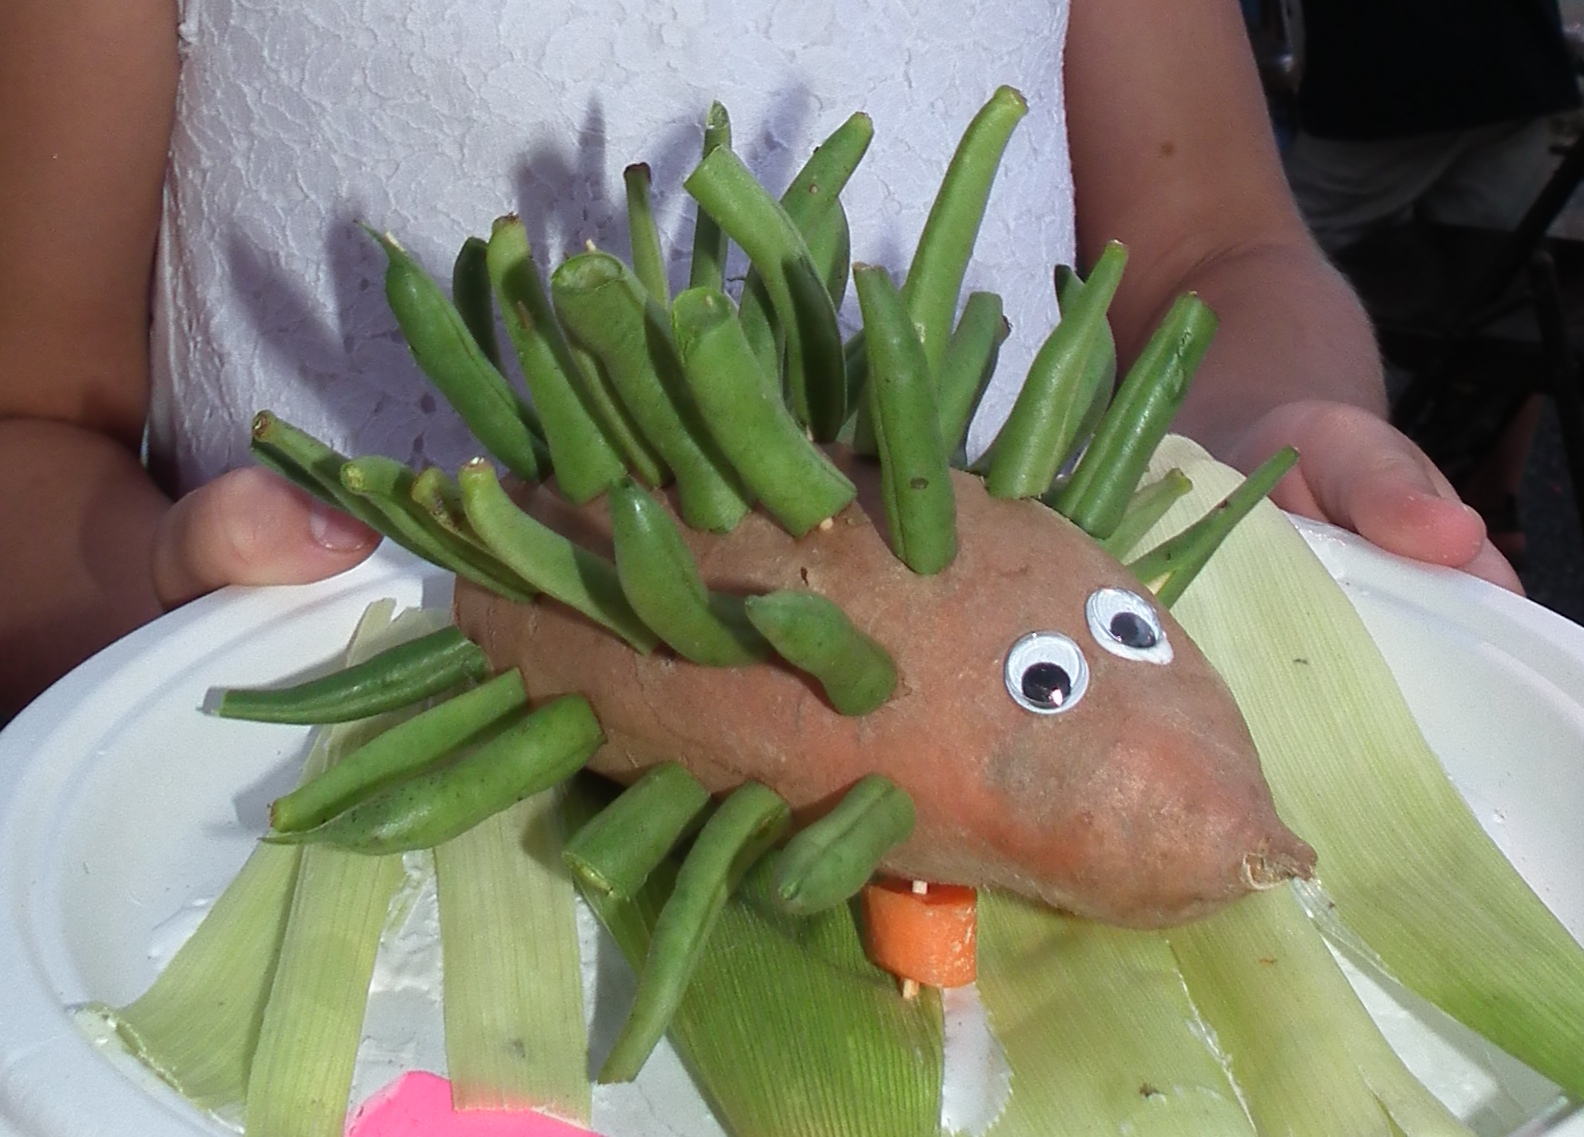 Veggie porcupine with a sweet potato body and green bean spines.